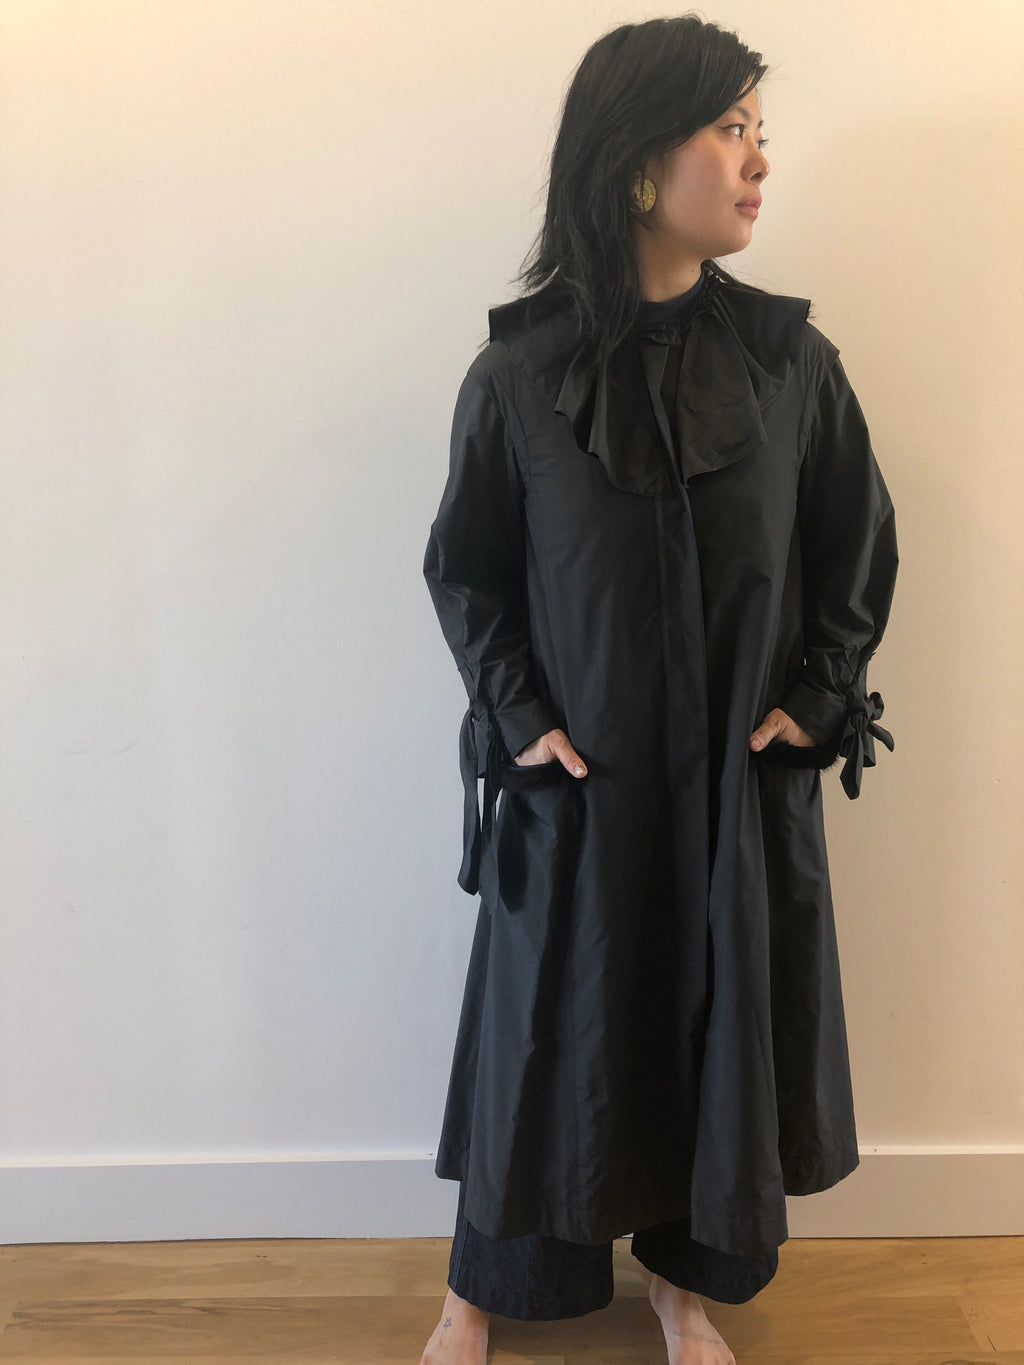 Nina Ricci Black Rain Lightweight Jacket Coat Cape 38